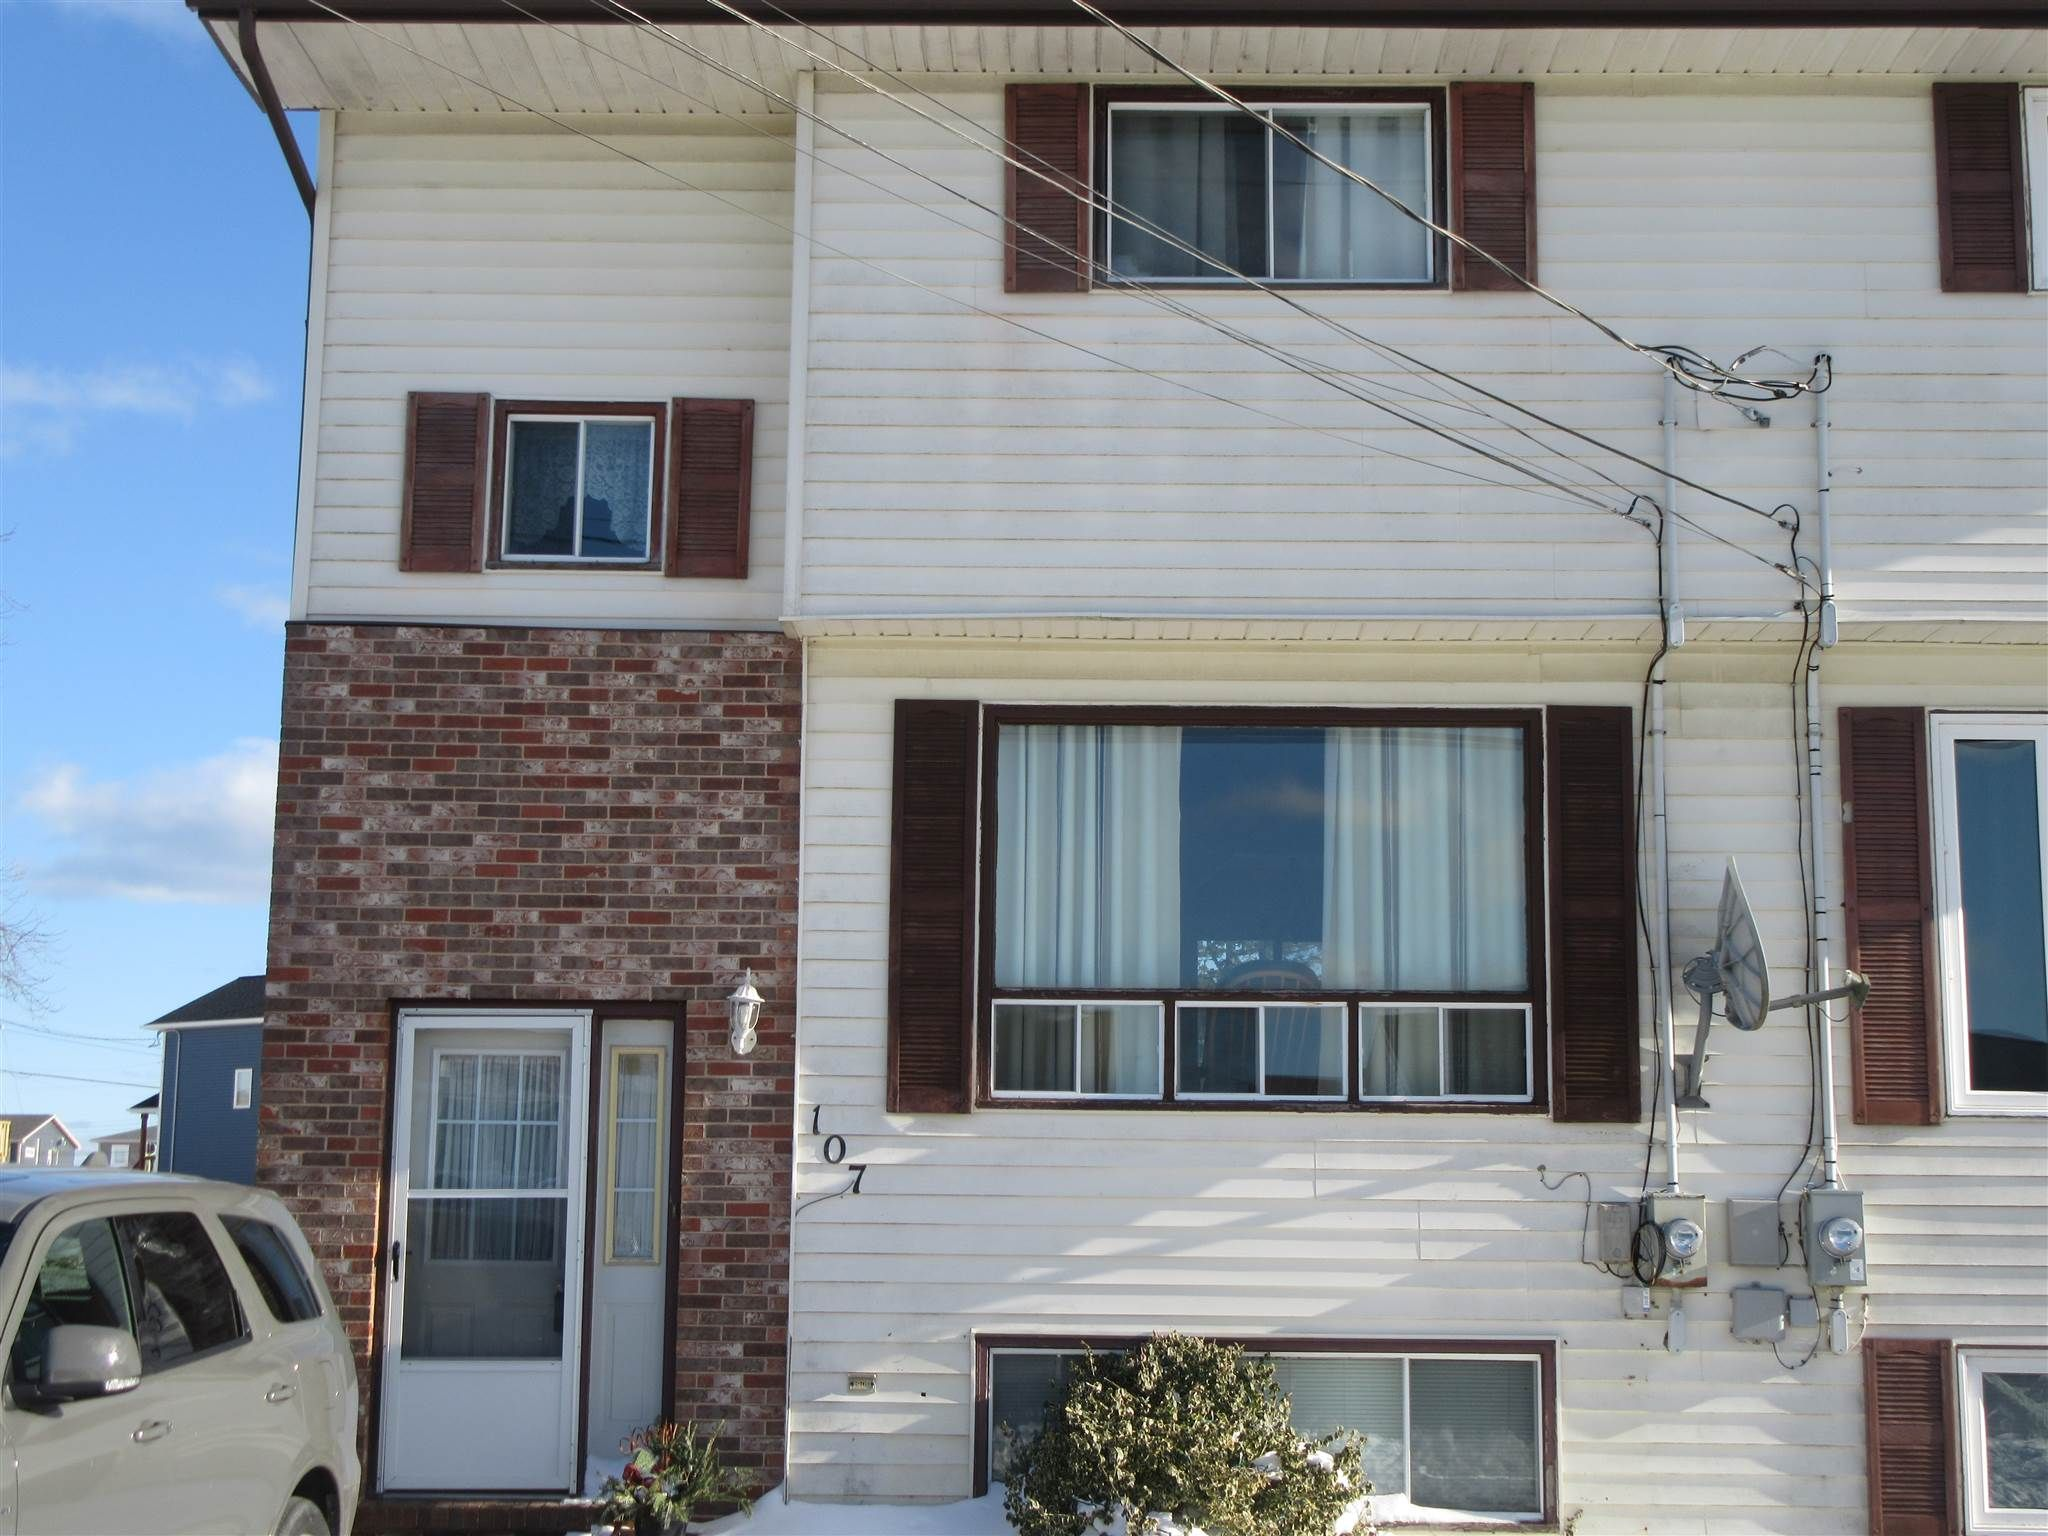 Main Photo: 107 Briarwood Drive in Eastern Passage: 11-Dartmouth Woodside, Eastern Passage, Cow Bay Residential for sale (Halifax-Dartmouth)  : MLS®# 202102566